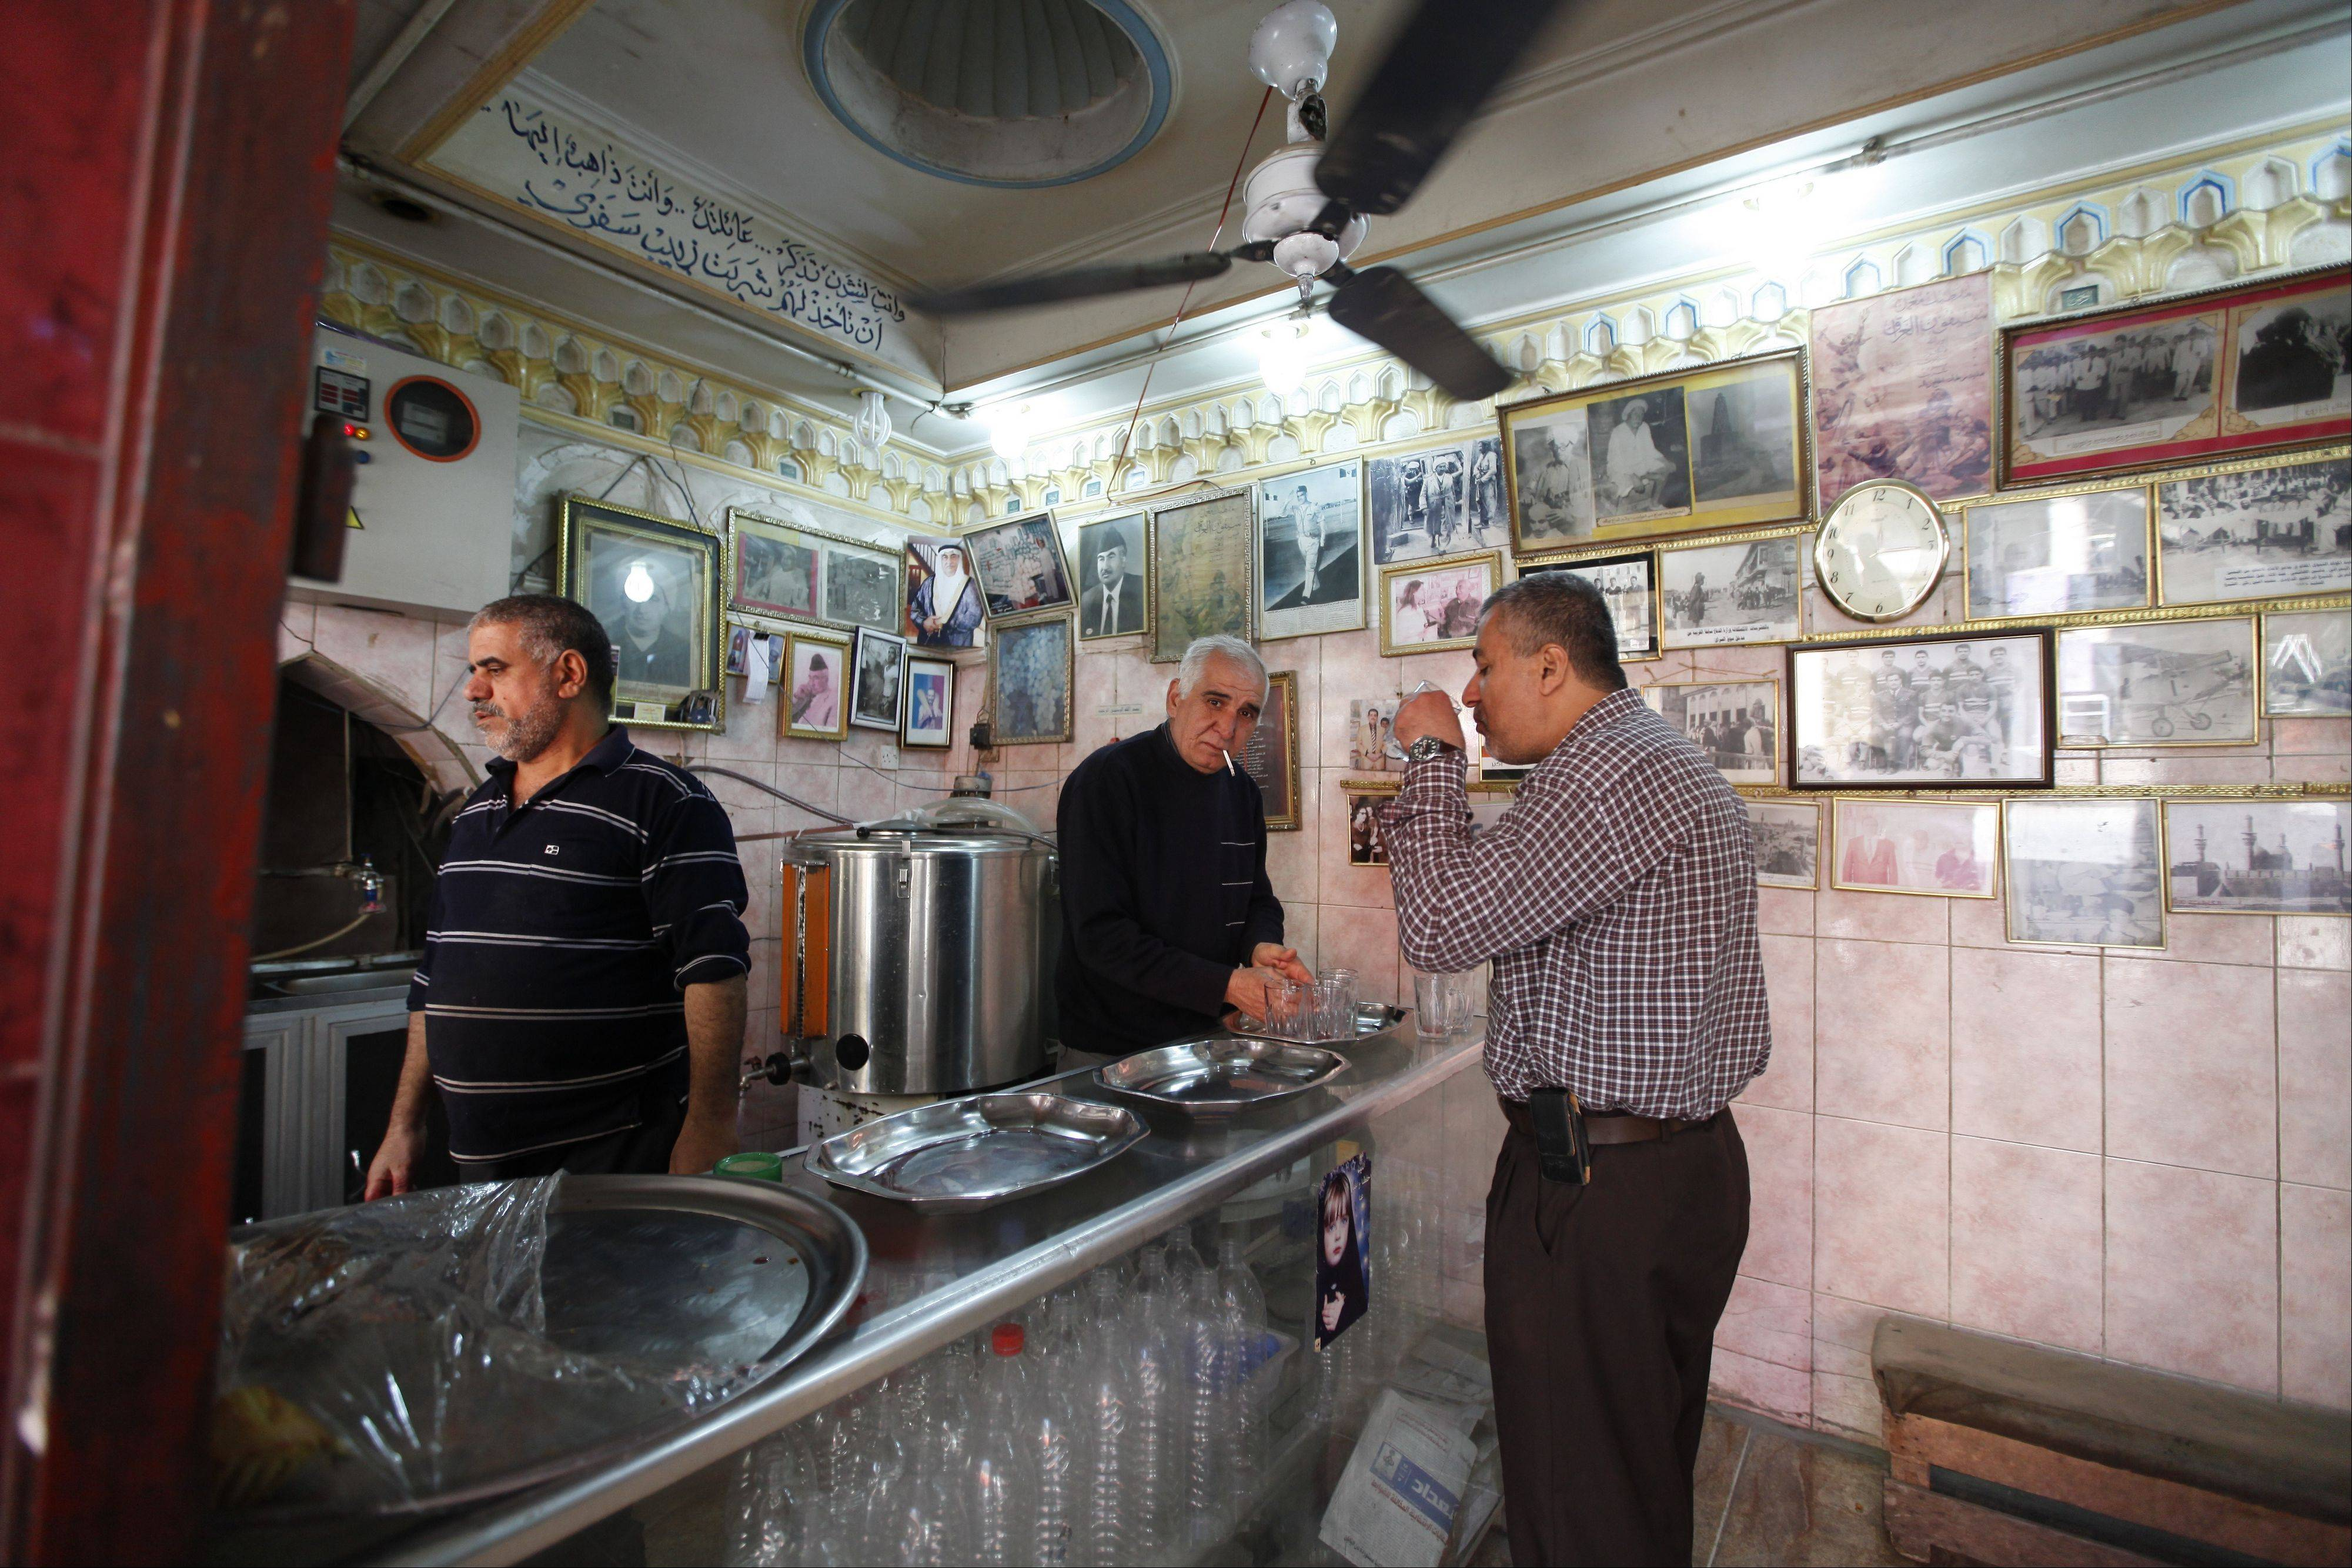 A customer sips juice at the Haji Zebala juice shop in Baghdad. It's easy to forget about the war's hardships inside the shop on the capital's historic Rasheed Street, where theyíre still serving up fresh-pressed grape juice like they have for generations.